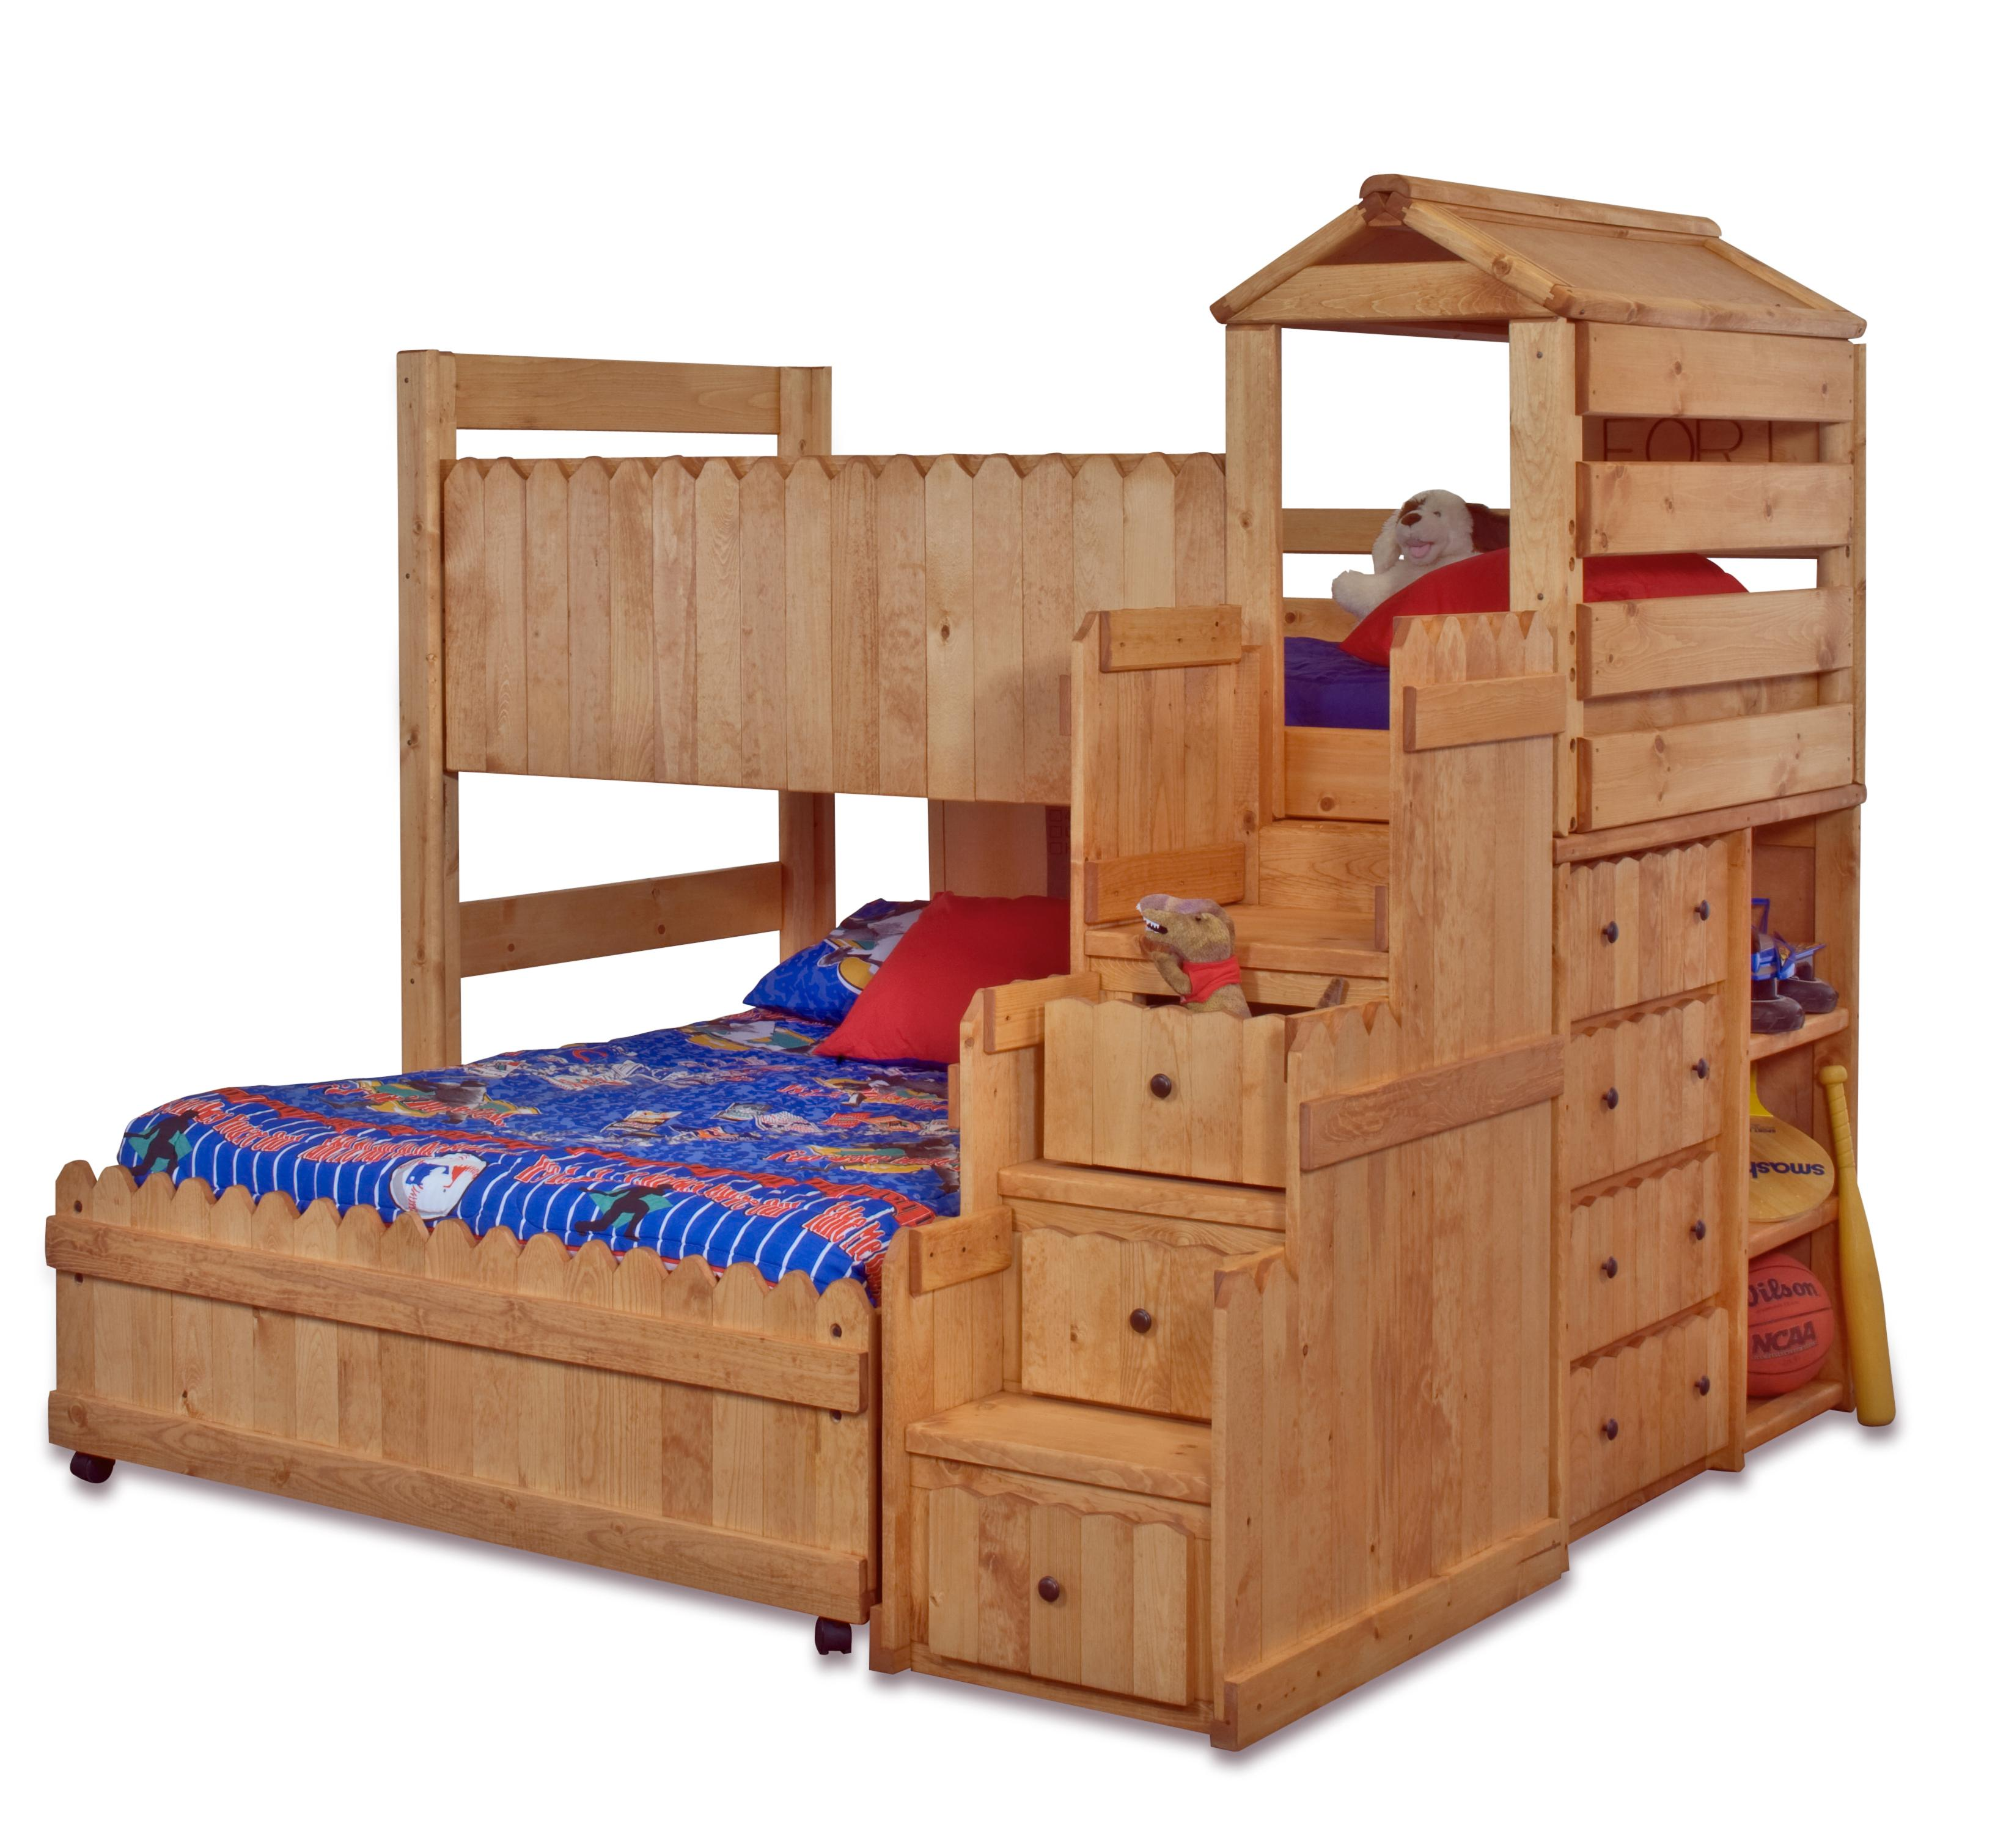 Trendwood The Fort TwinFull Complete Loft Fort Bed With